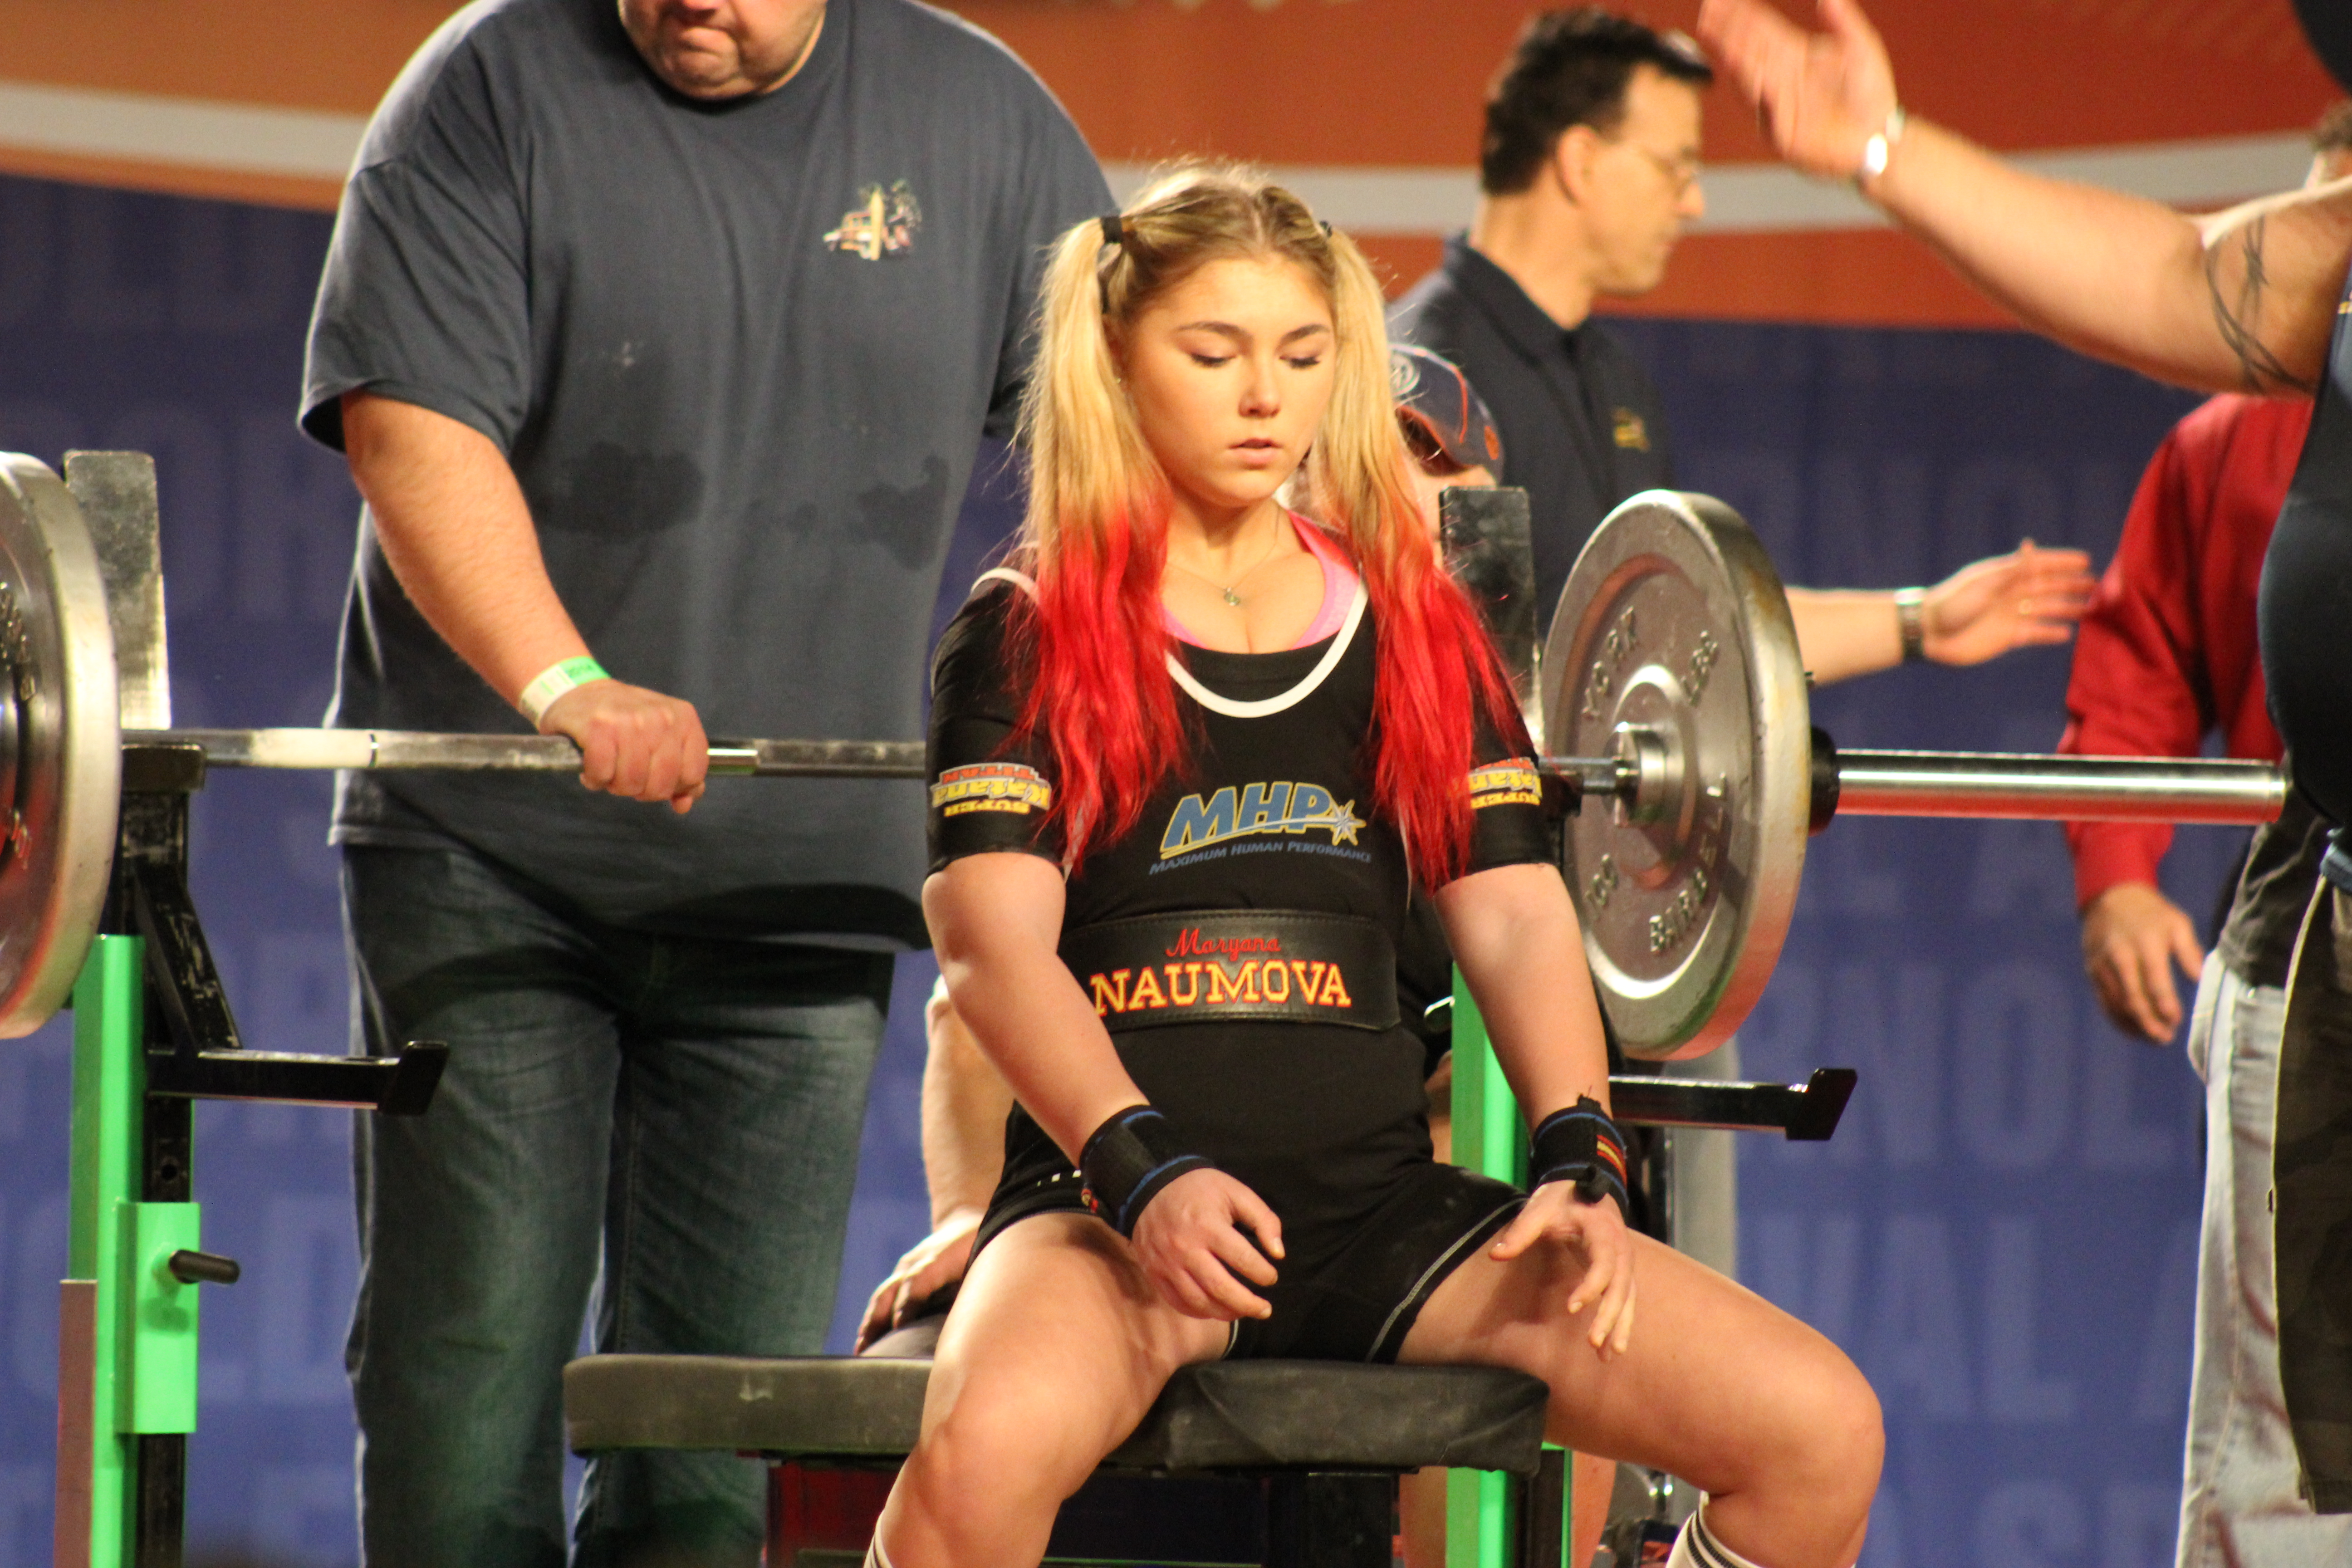 Wo womens bench press records by weight class - Here She Prepares For 290lbs